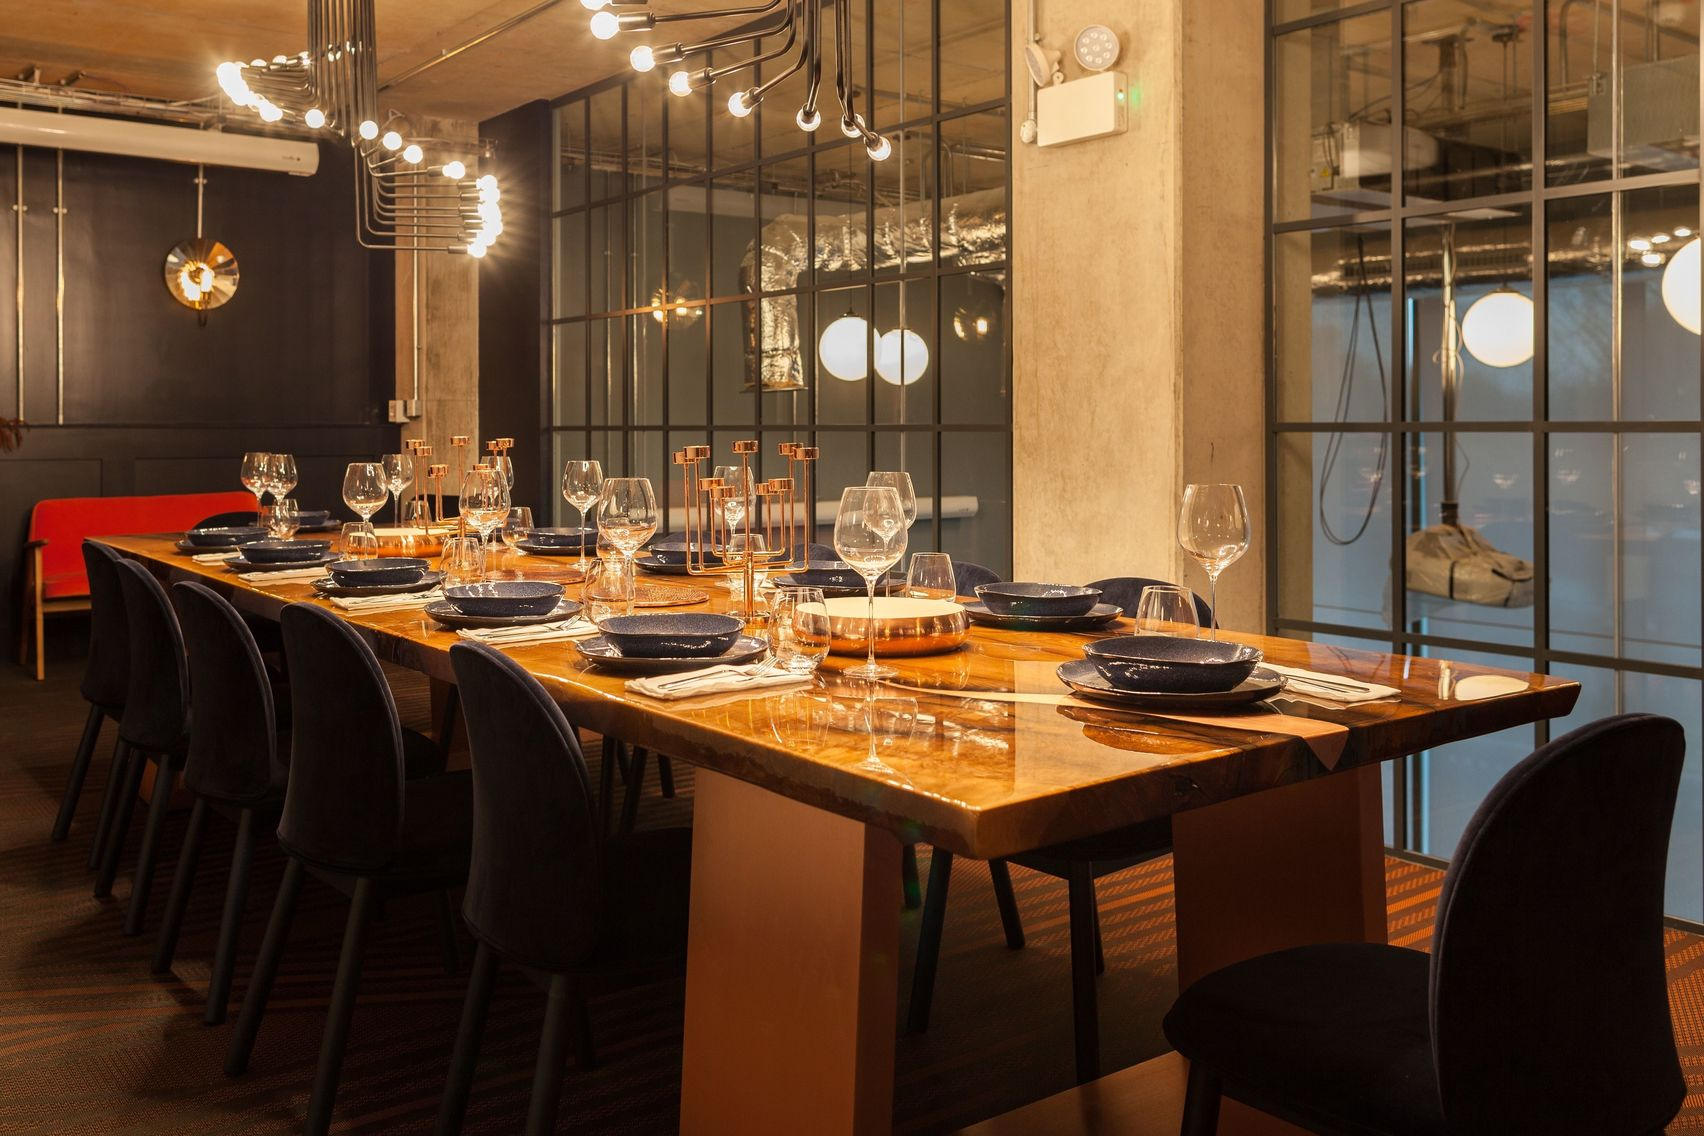 A private dining room with a glass wall and low hanging lights